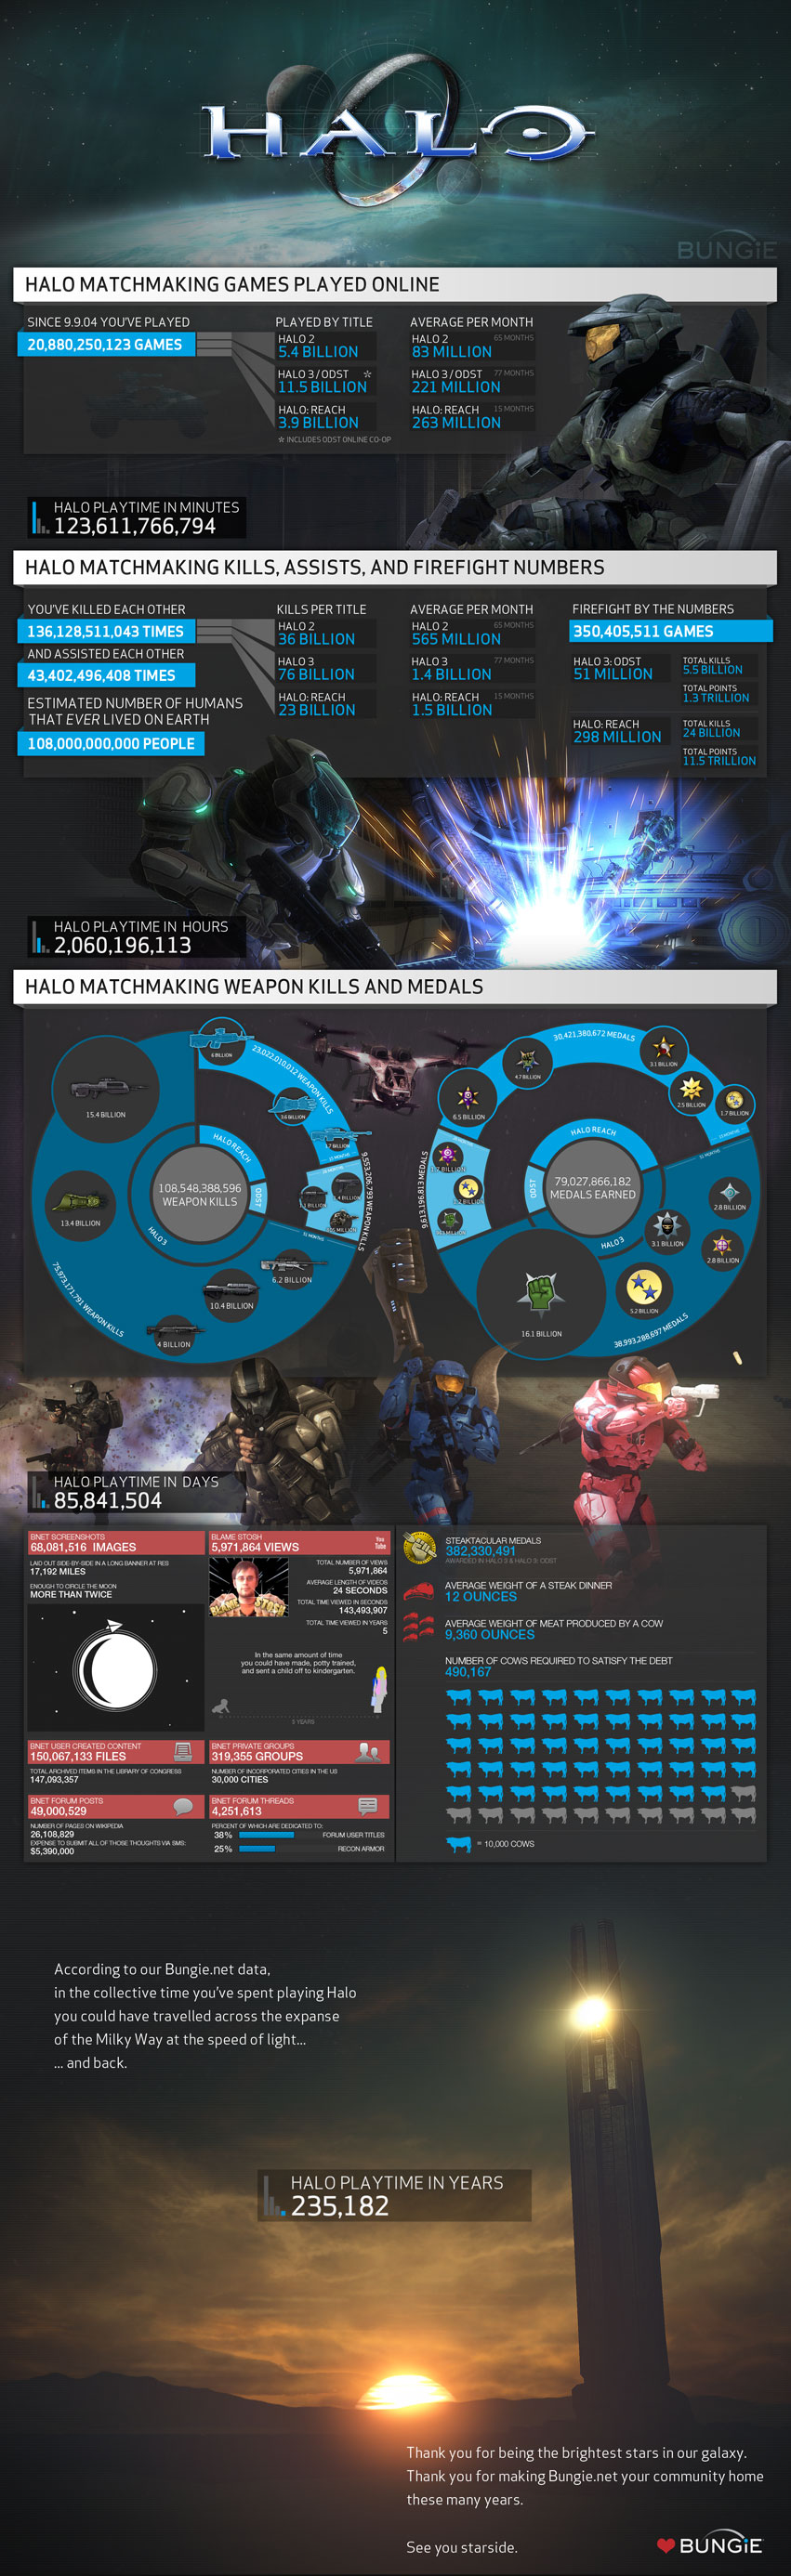 halo reach matchmaking maps list Halo 5 stats, leaderboards, rankings, playlist stats, lfg and more.